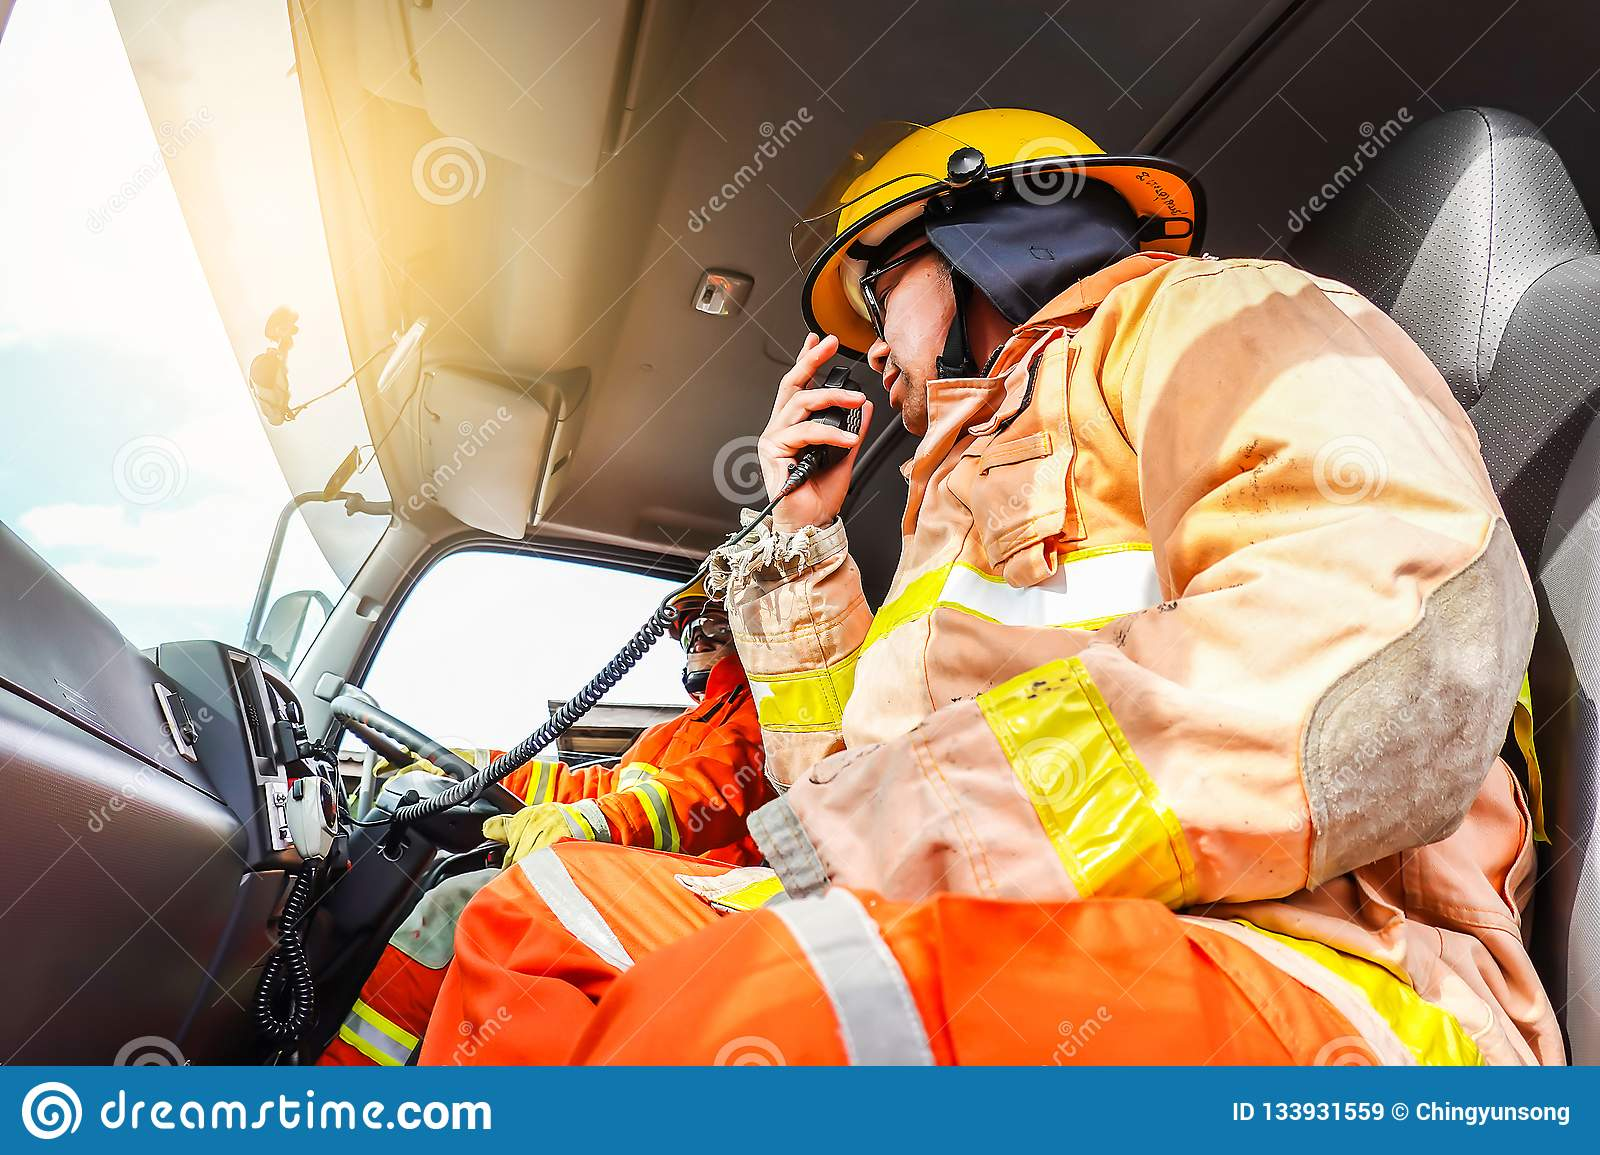 A firefighter in protective clothing and a helmet sits in a cargo rescue vehicle and talks on the radio